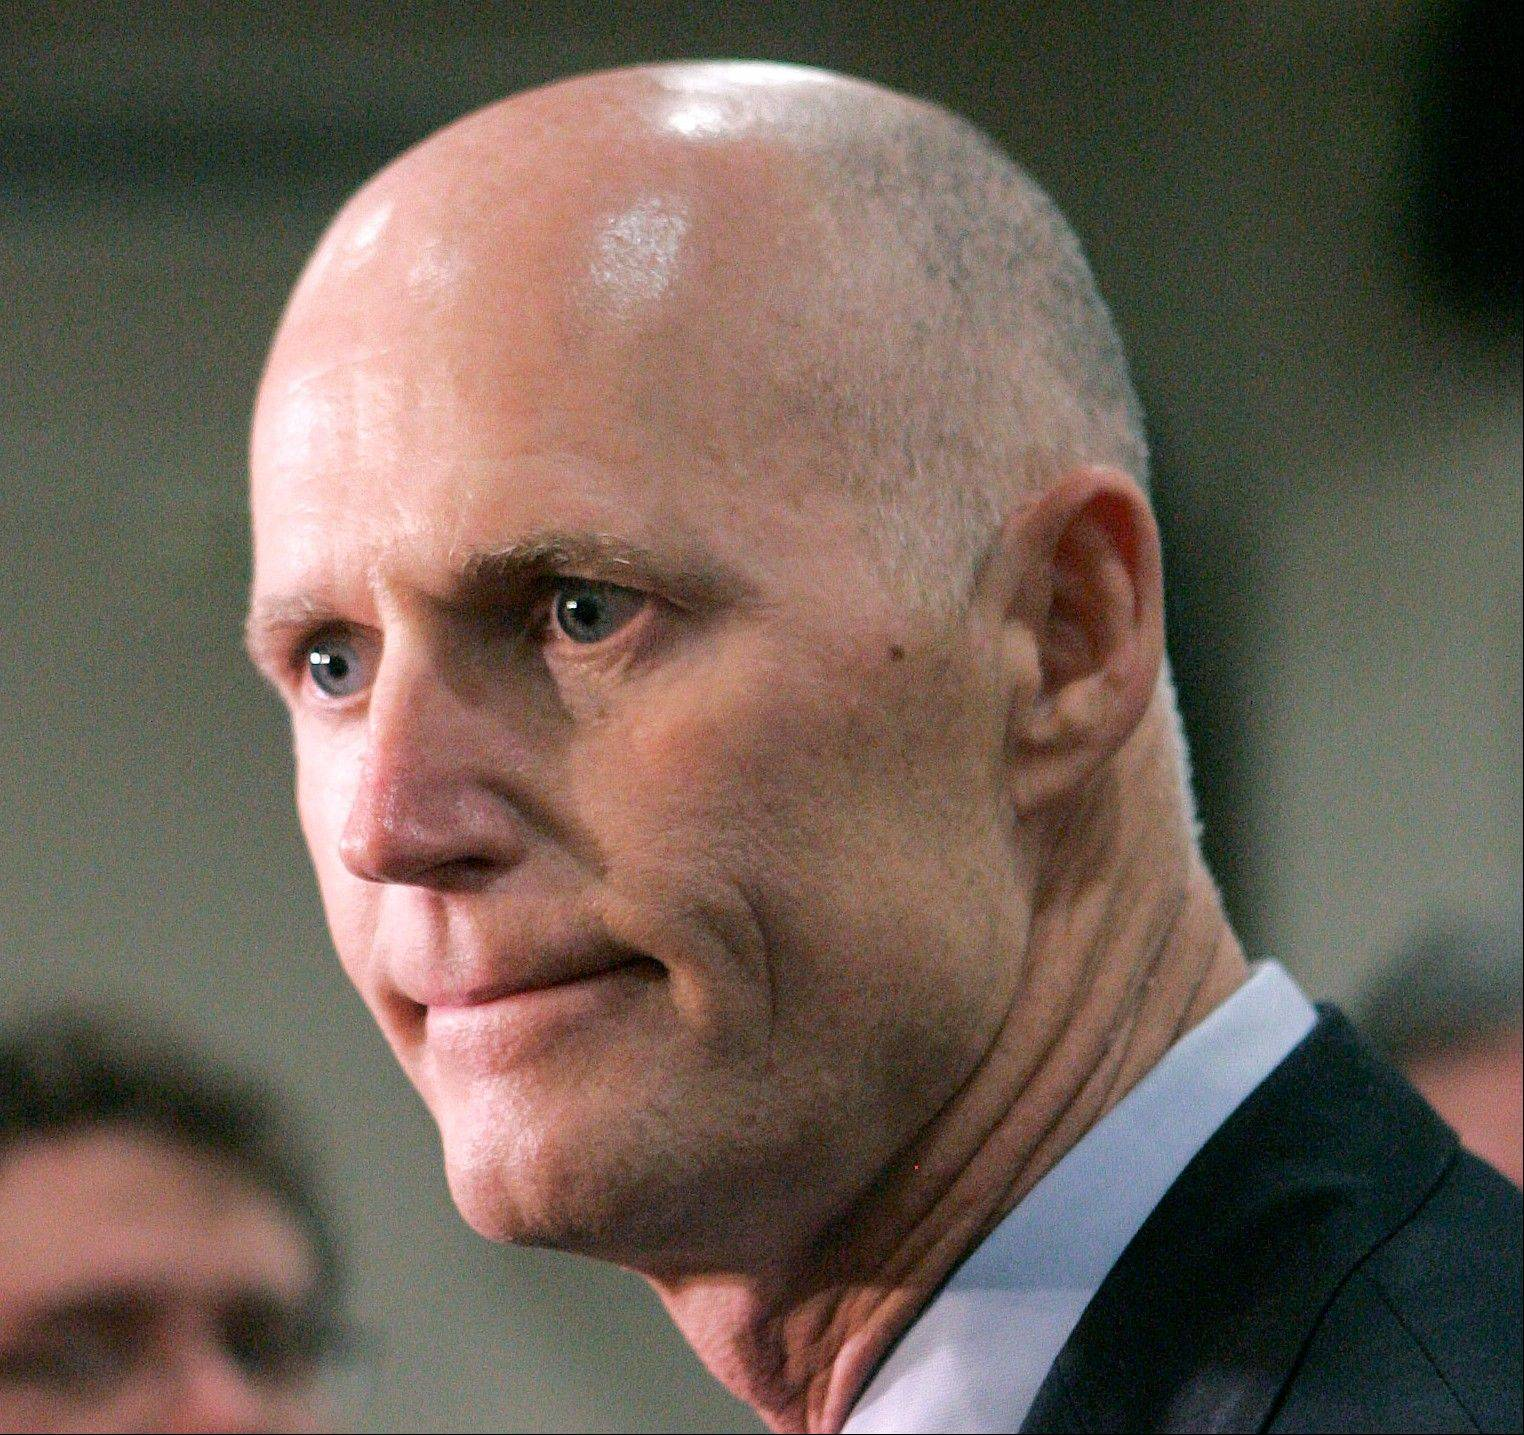 One of the most visible opponents of Obama�s health care overhaul, Florida Republican Gov. Rick Scott, now says �if I can get to yes, I want to get to yes.�